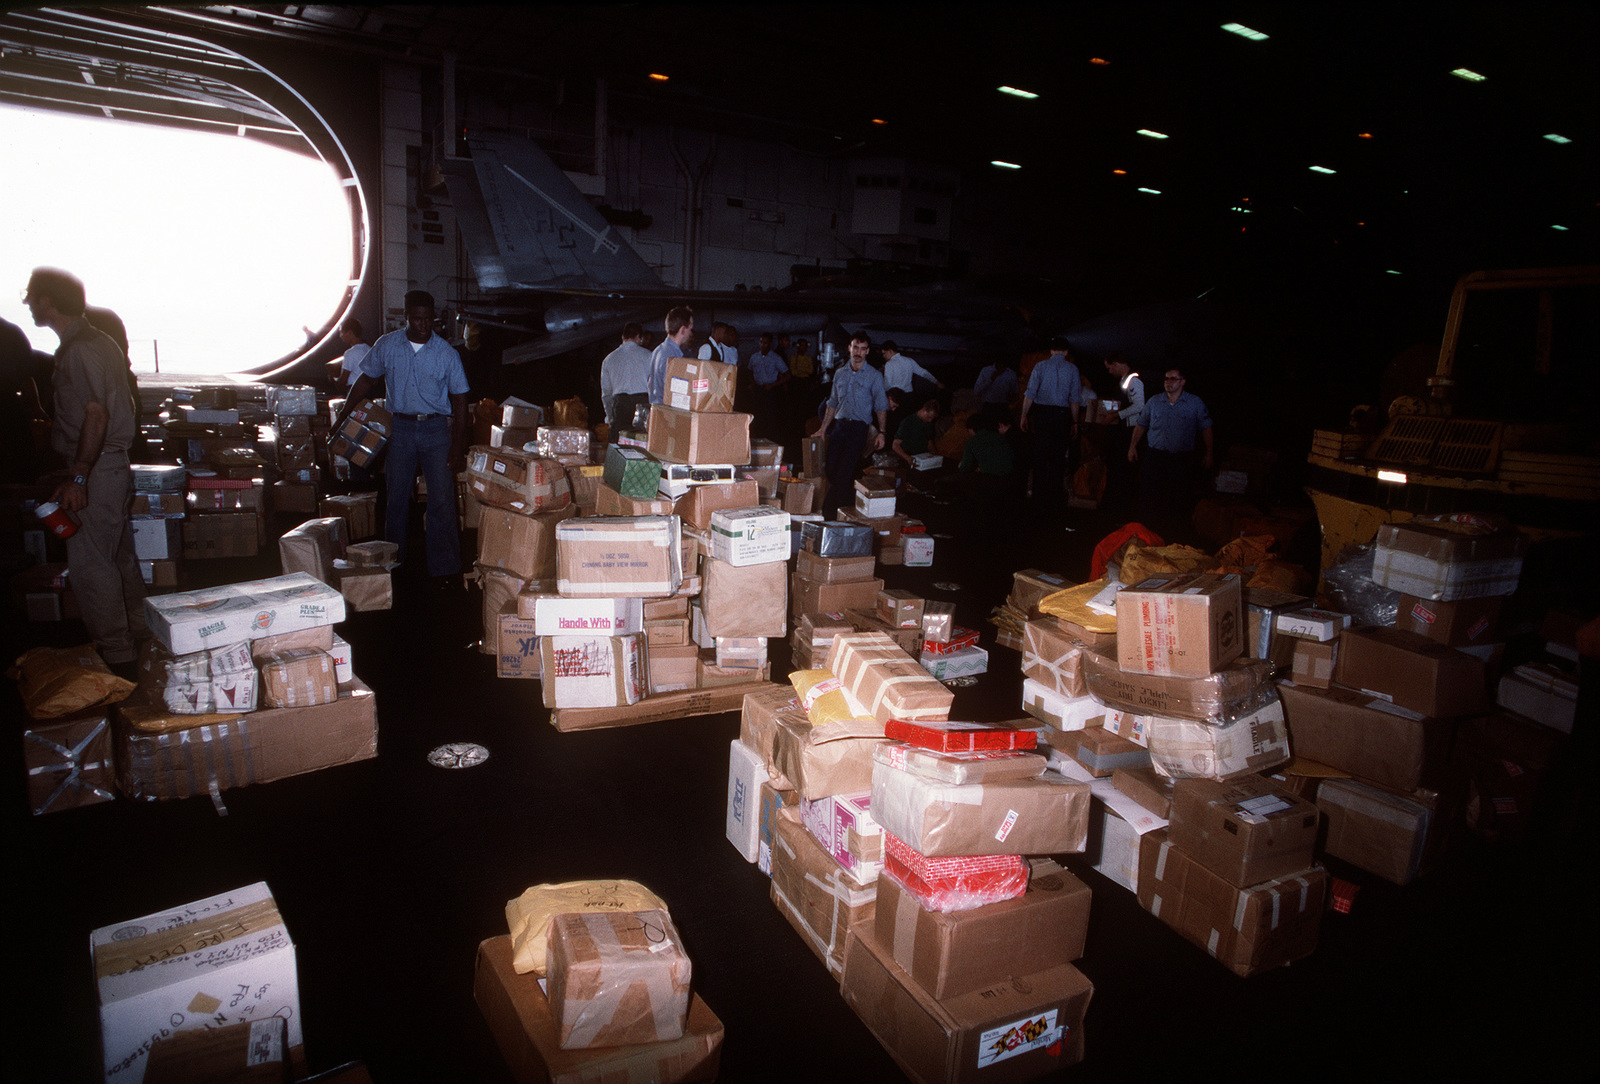 Postal clerks sort packages on the hangar deck aboard the aircraft carrier USS JOHN F. KENNEDY (CV-67) during Operation Desert Shield. Approximately 41,000 pounds of mail was received by the KENNEDY in this one shipment